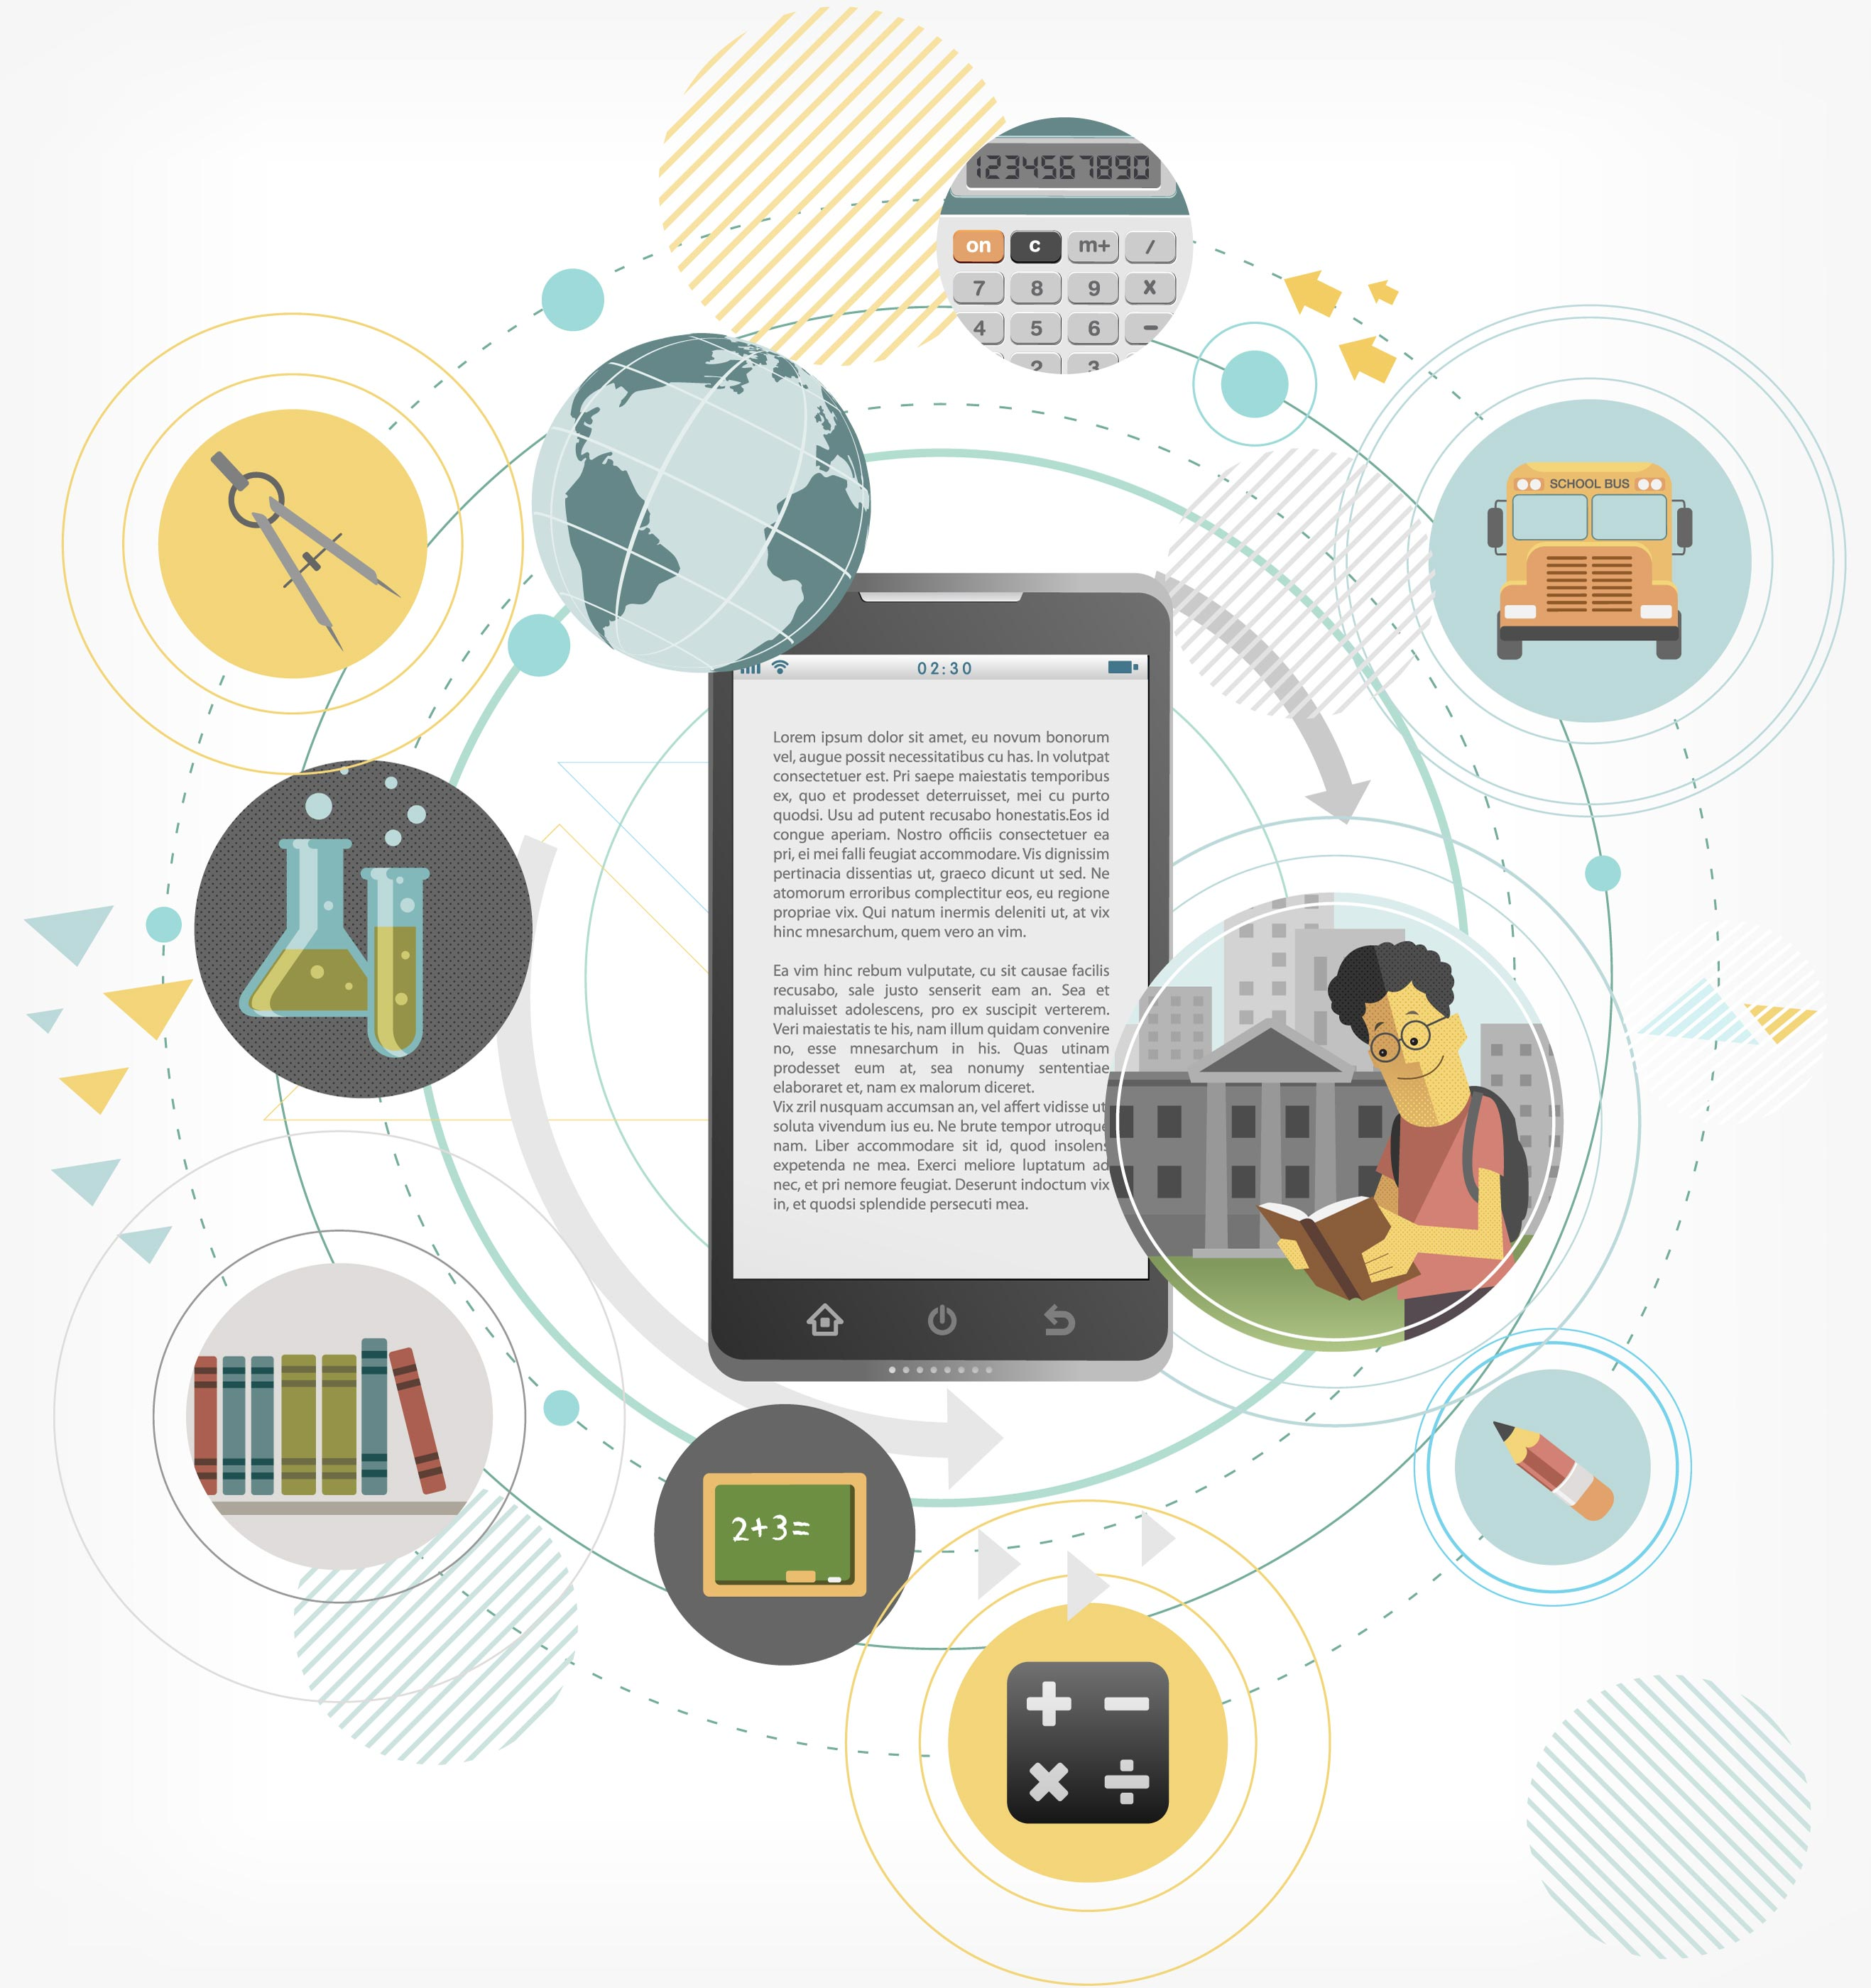 mobile technology in learning essay Free resource of educational web tools, 21st century skills, tips and tutorials on how teachers and students integrate technology into education.